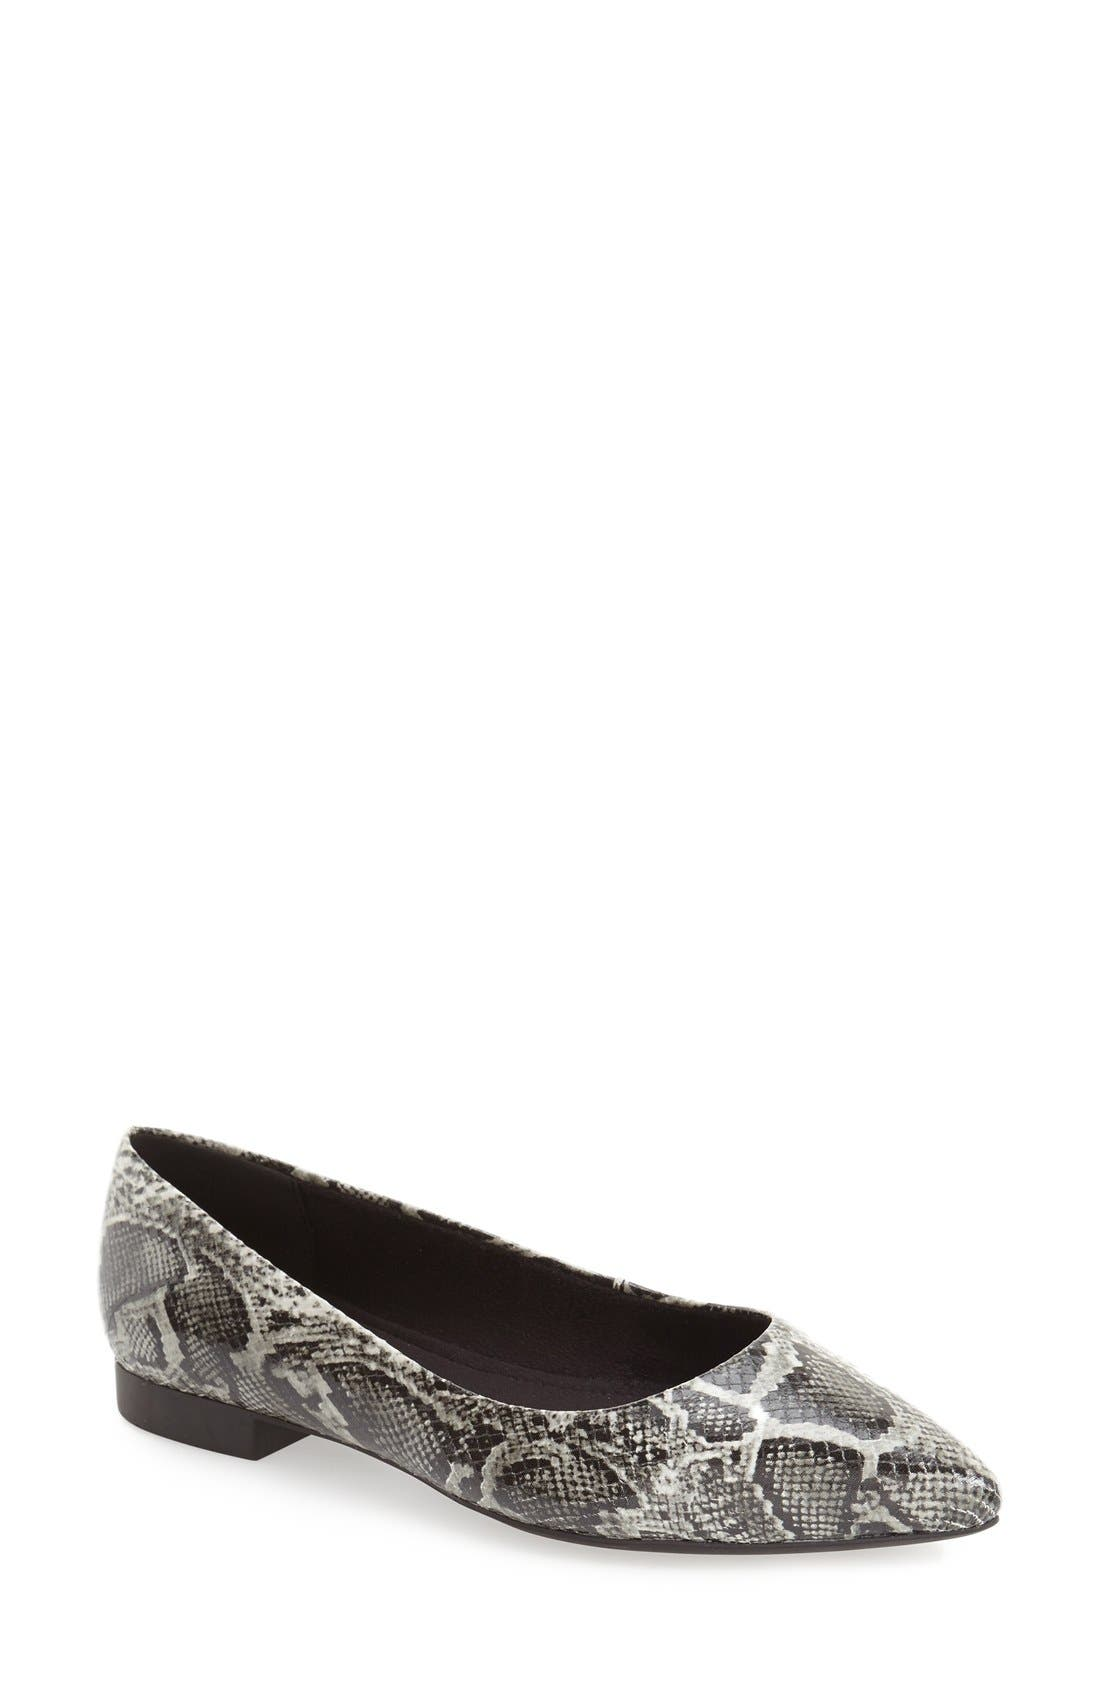 'Vivien' Pointy Toe Flat,                             Main thumbnail 1, color,                             Black/ White Snake Print